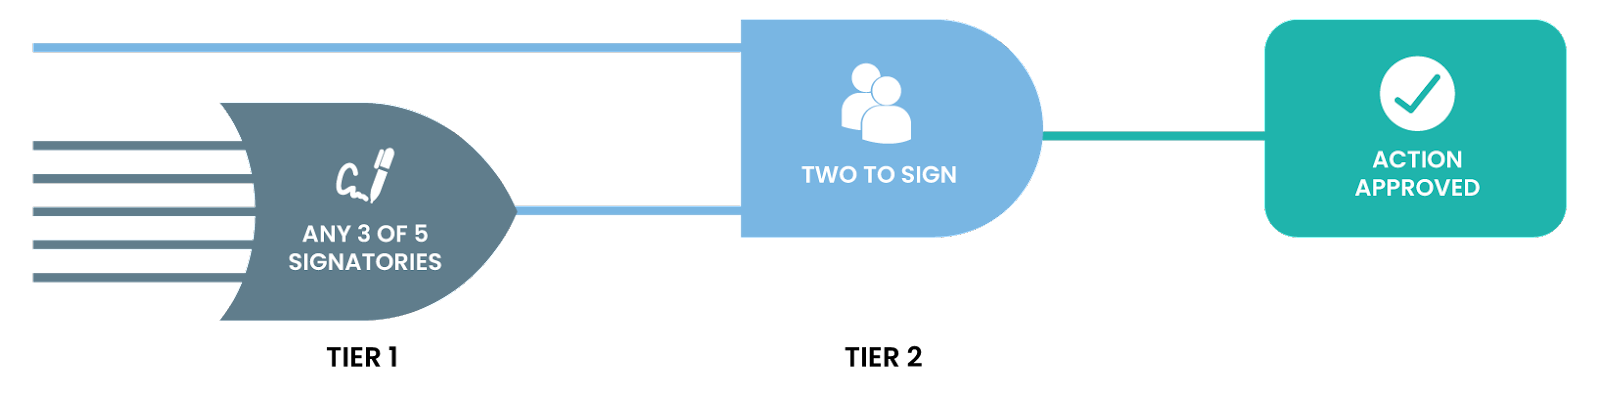 Multi-level multi-signing of a transaction